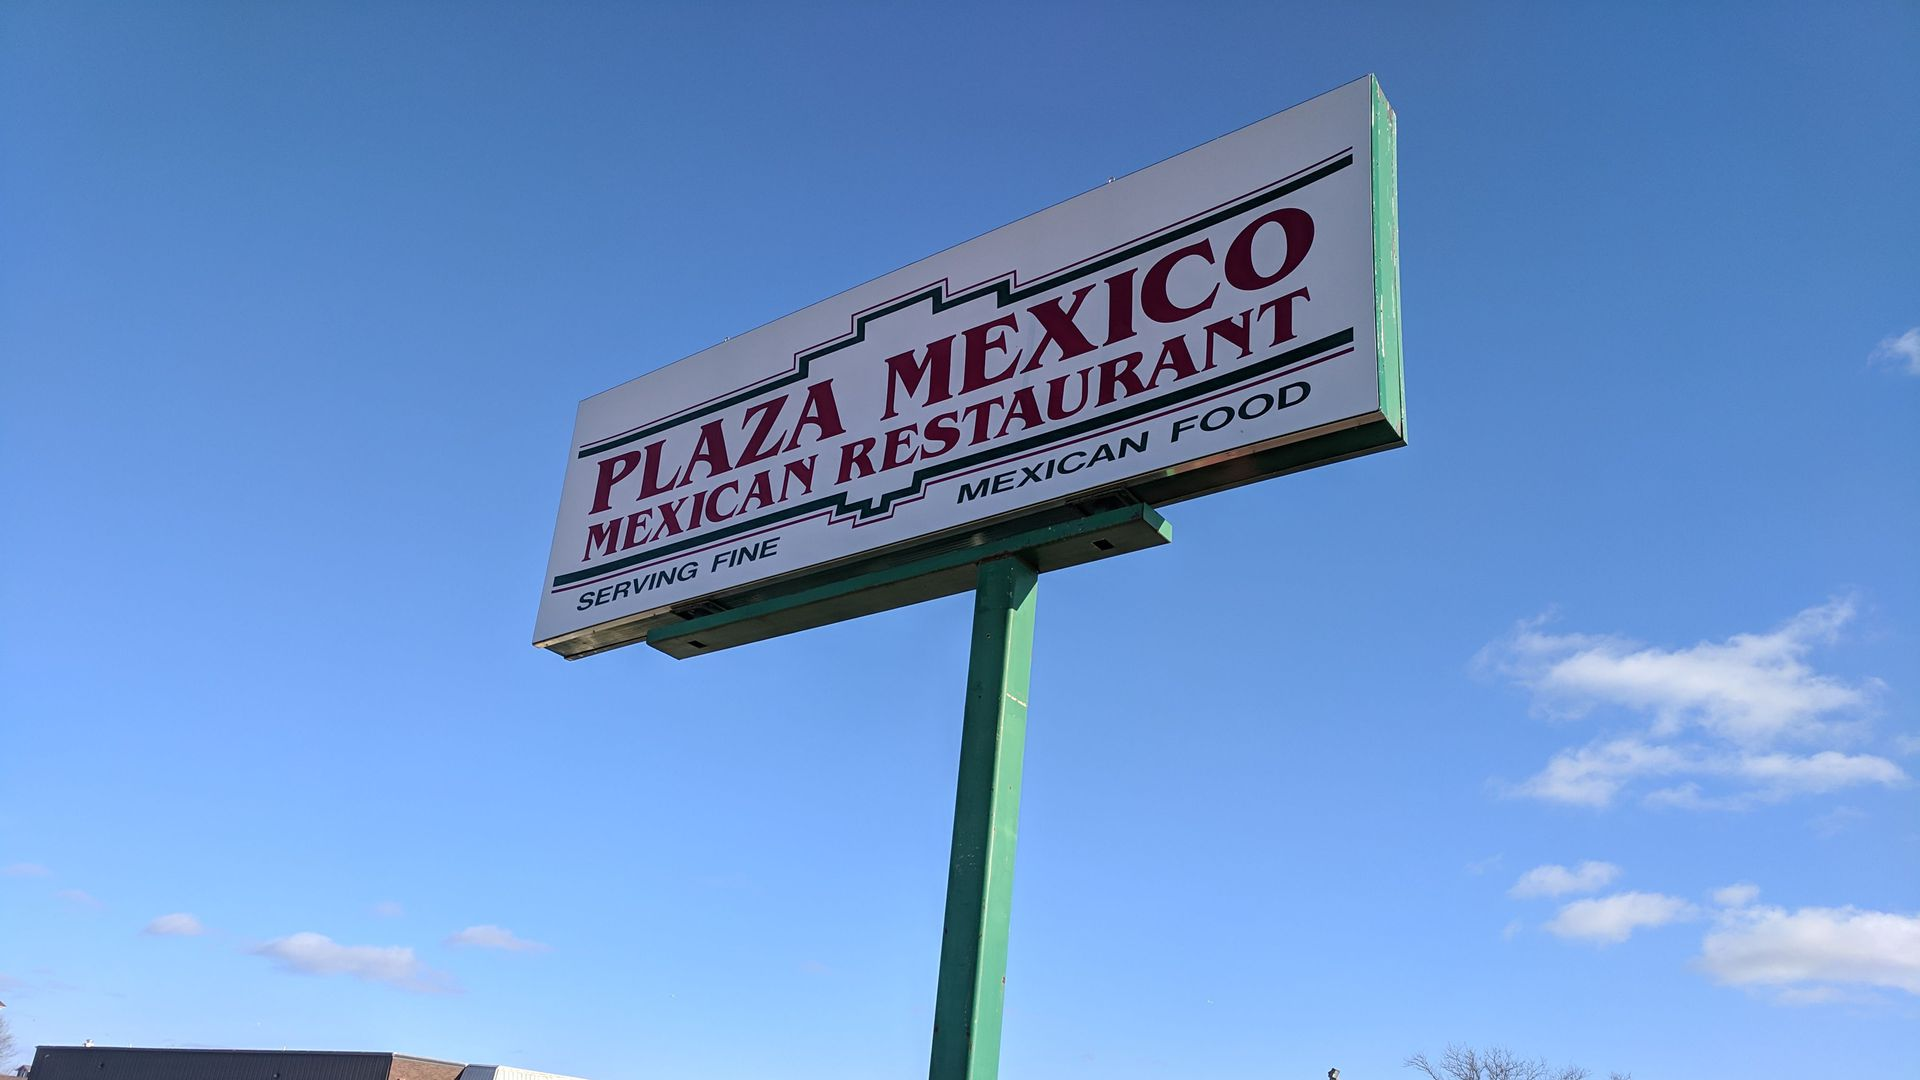 Mexican restaurant in Storm Lake, Iowa